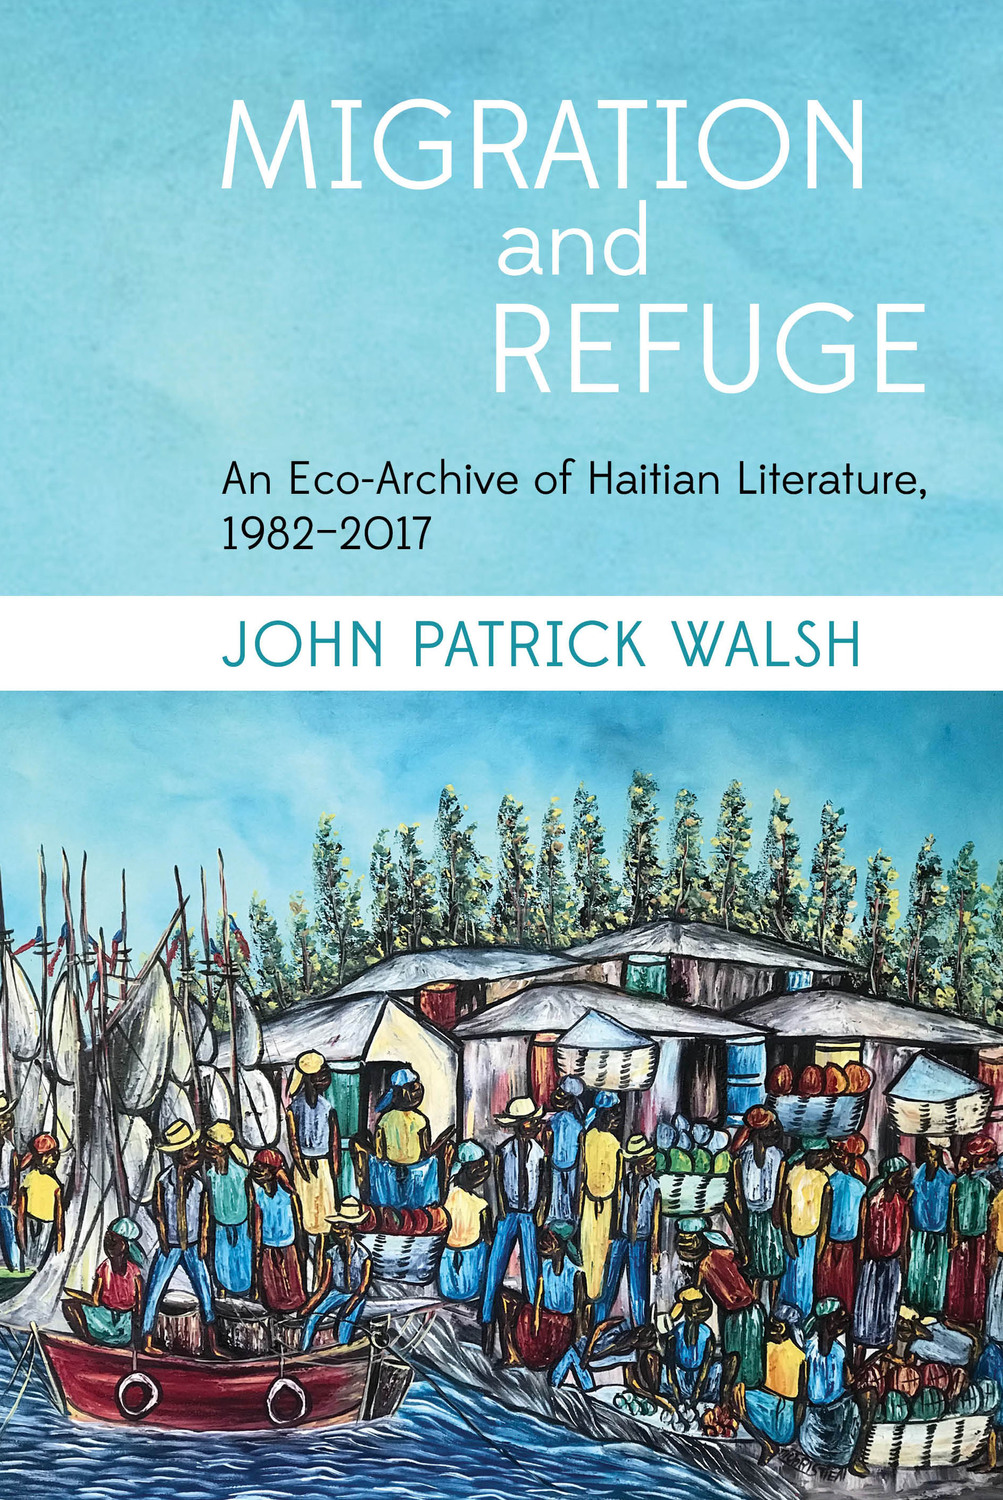 Migration and Refuge